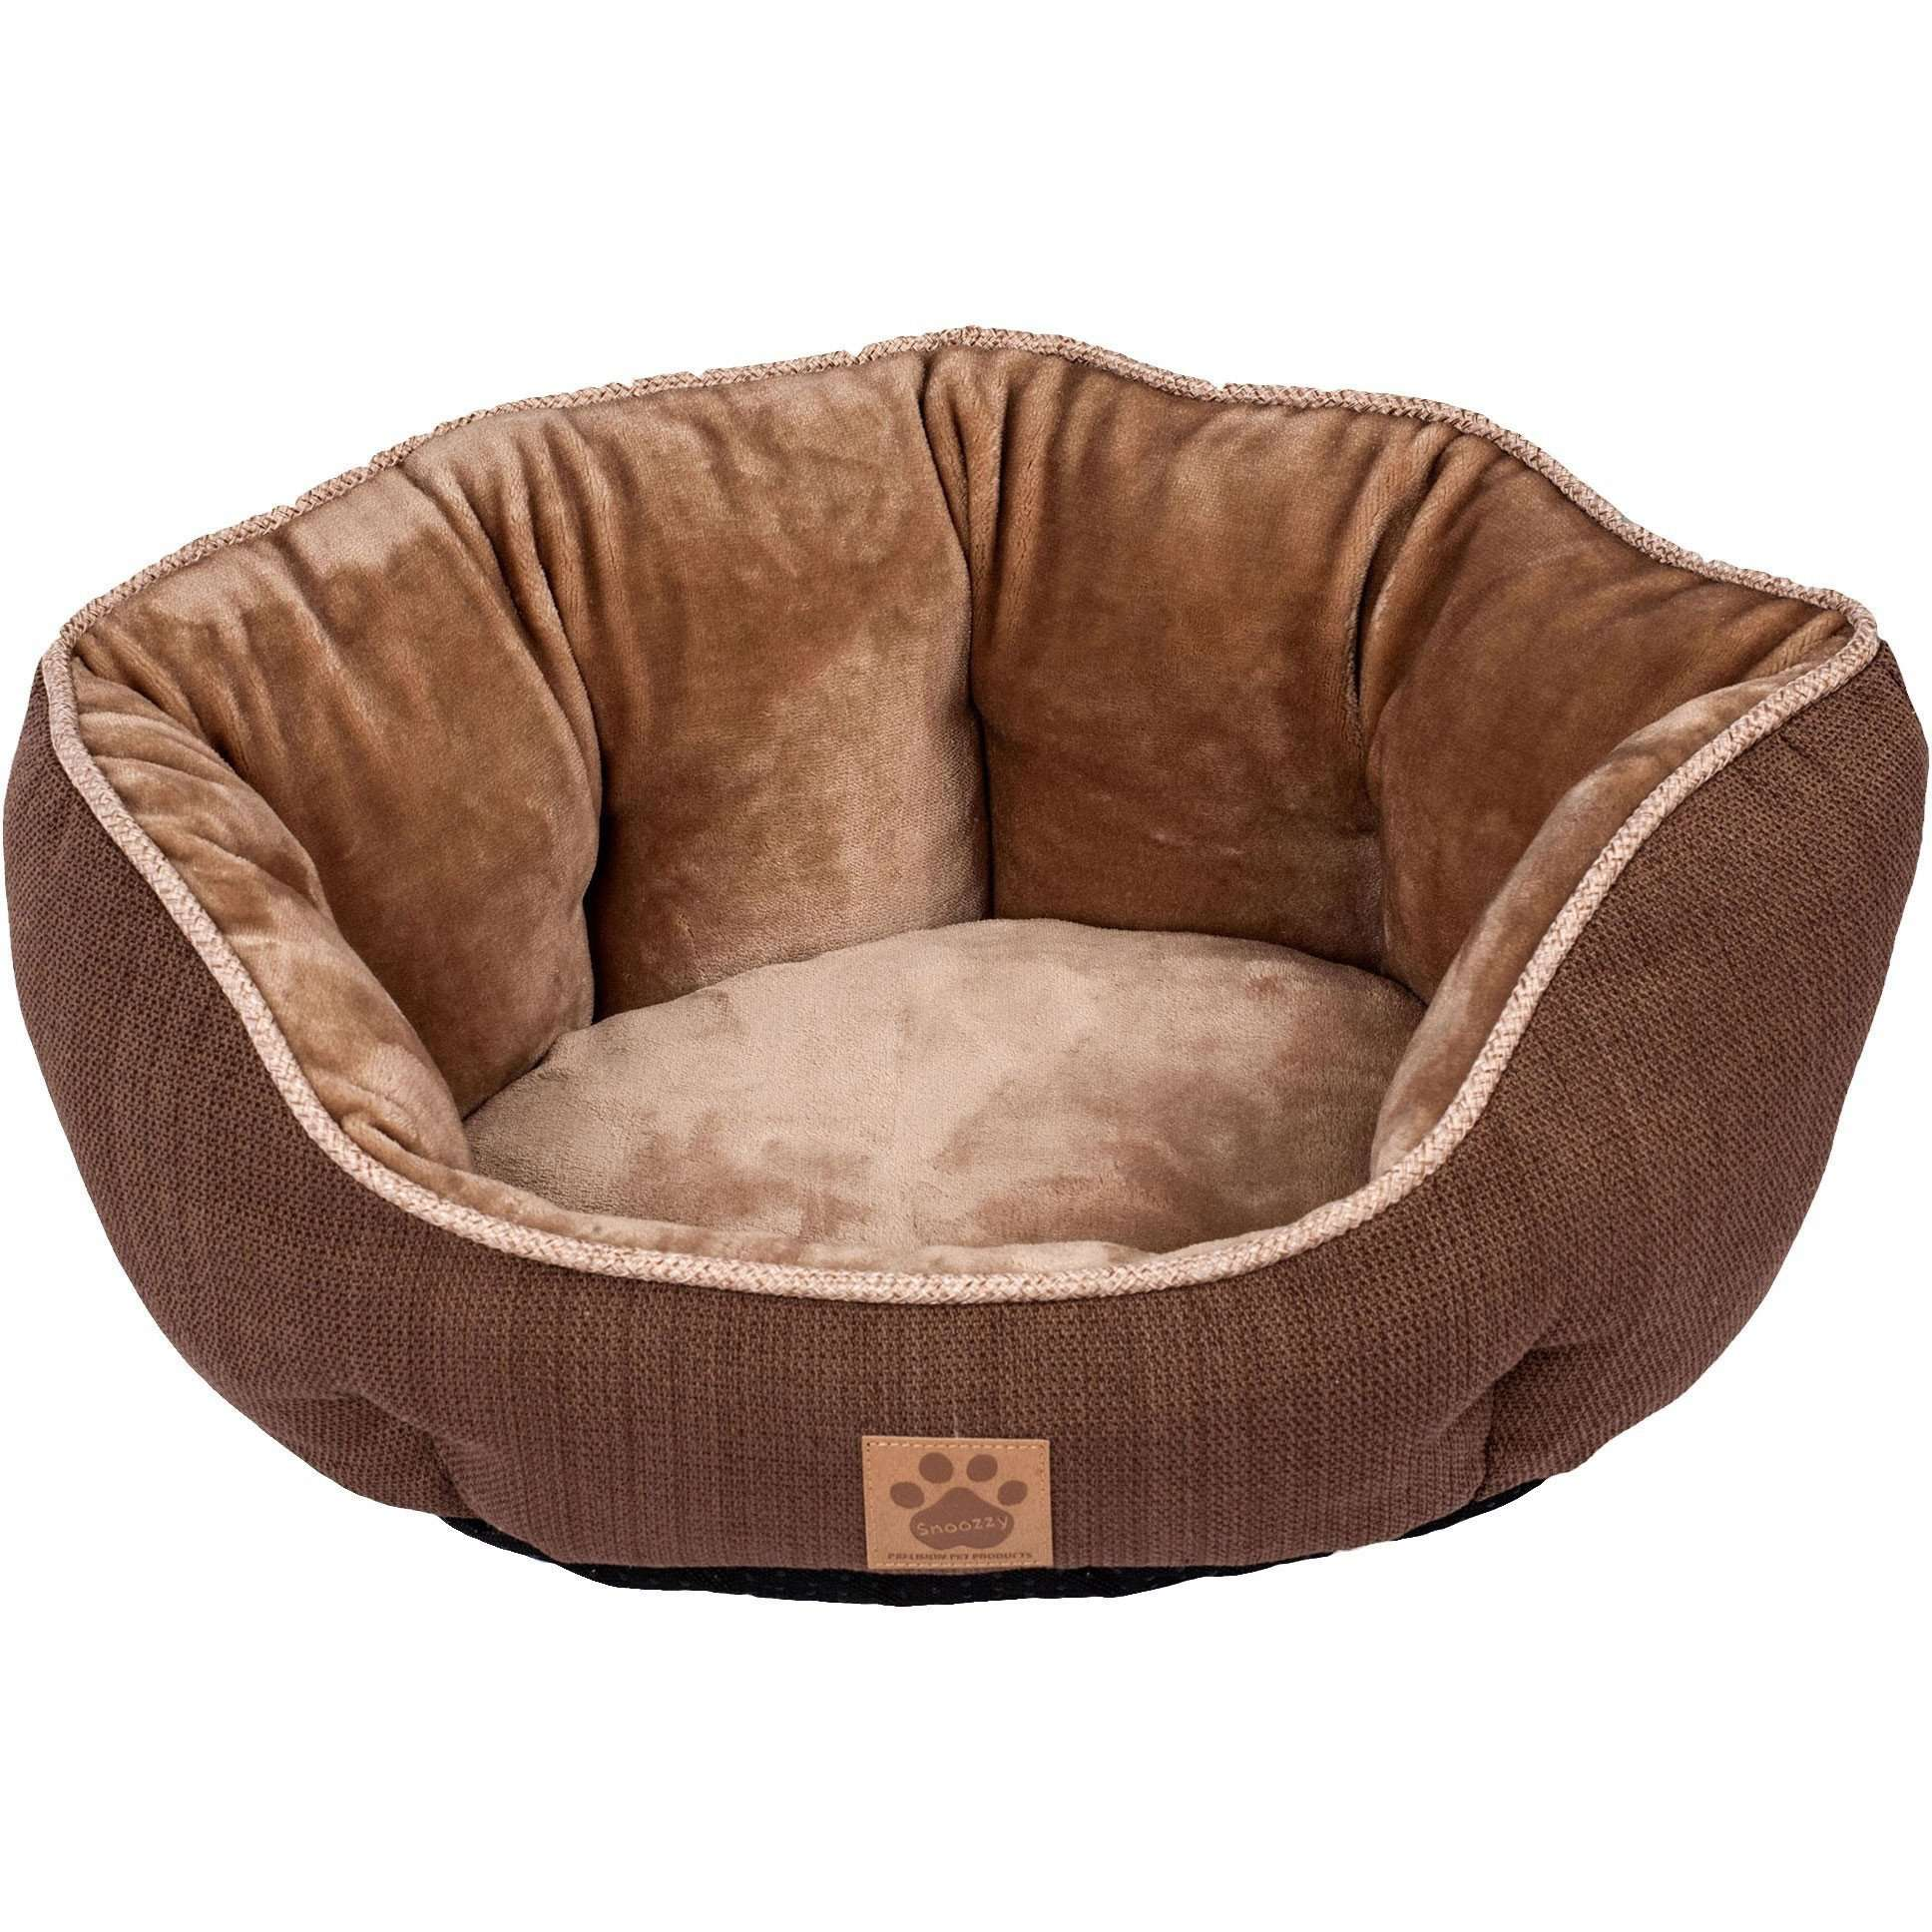 nhl toronto maple leafs dog bed petmax